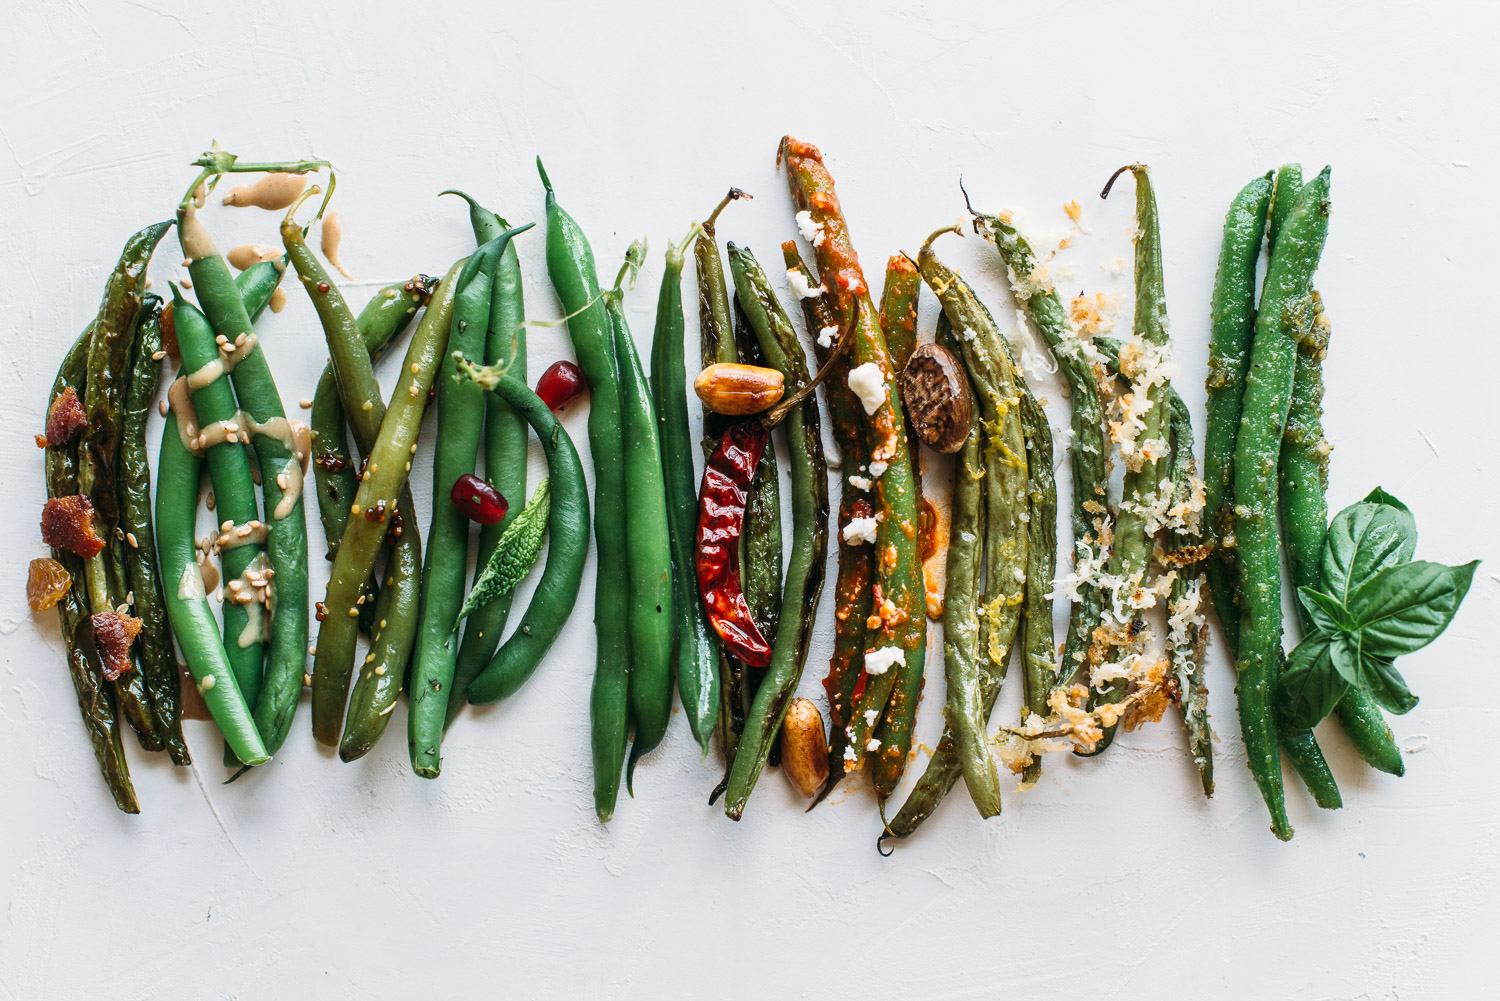 Food Styling - Starting at $800